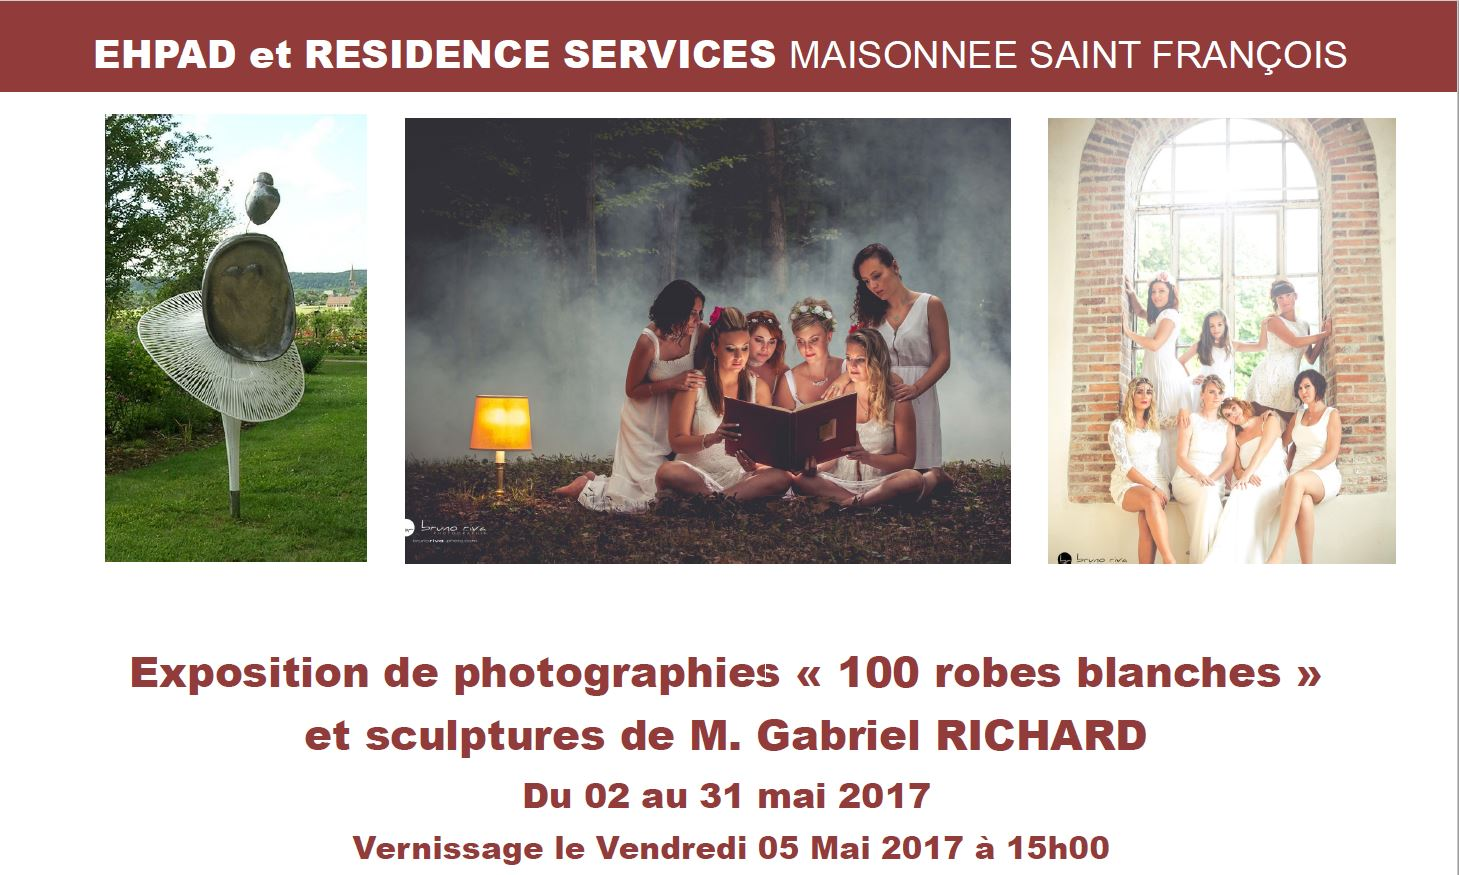 Expo 100 robes blanches